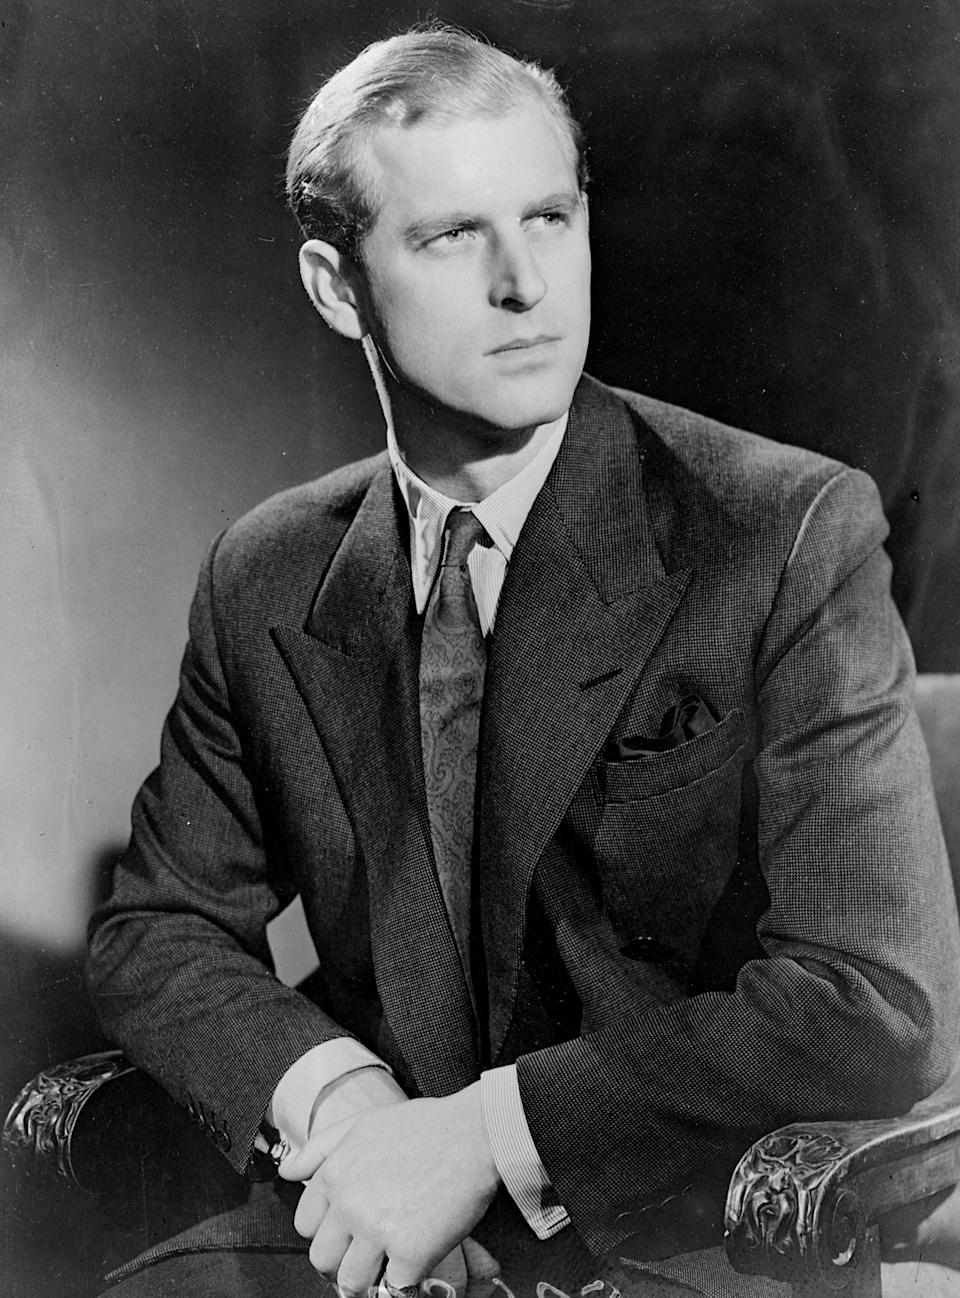 <p>Prince Philip posed in a sharp suit and tie the day before his wedding on November 20, 1947. Photo: Getty Images.</p>